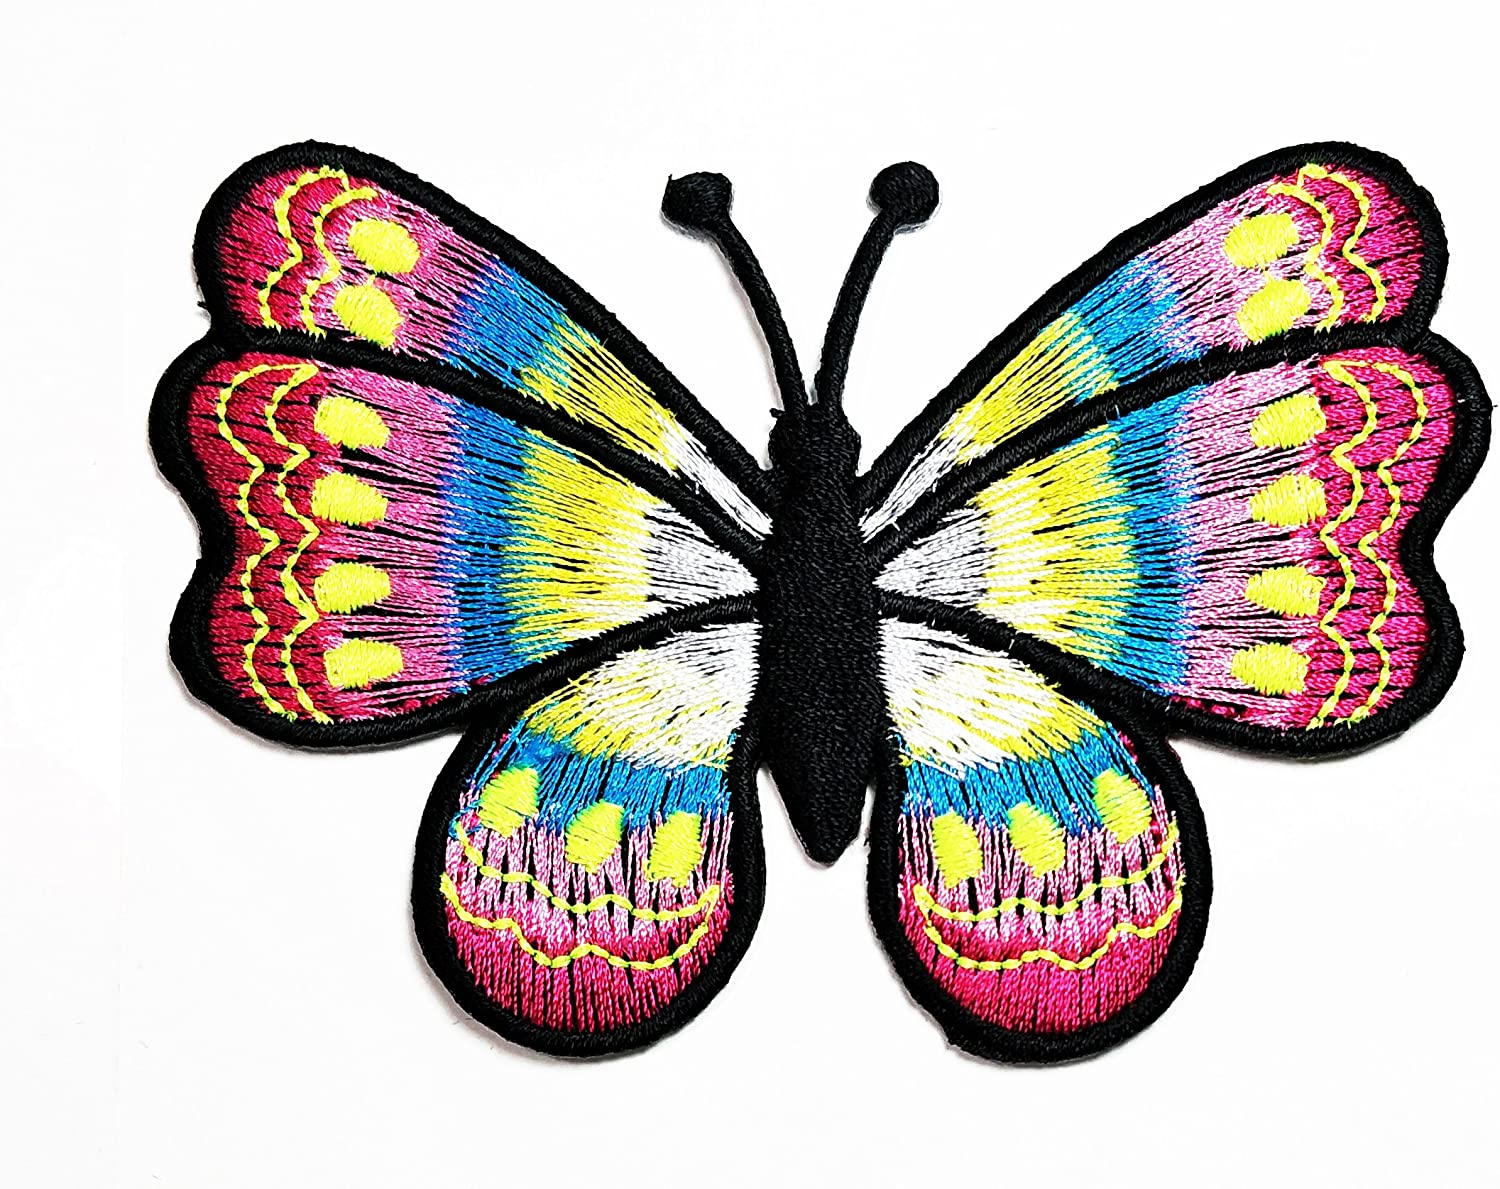 HHO Colorful Butterfly Insect Boho Hippie Retro Love Peace Patch Embroidered DIY Patches, Cute Applique Sew Iron on Kids Craft Patch for Bags Jackets Jeans Clothes